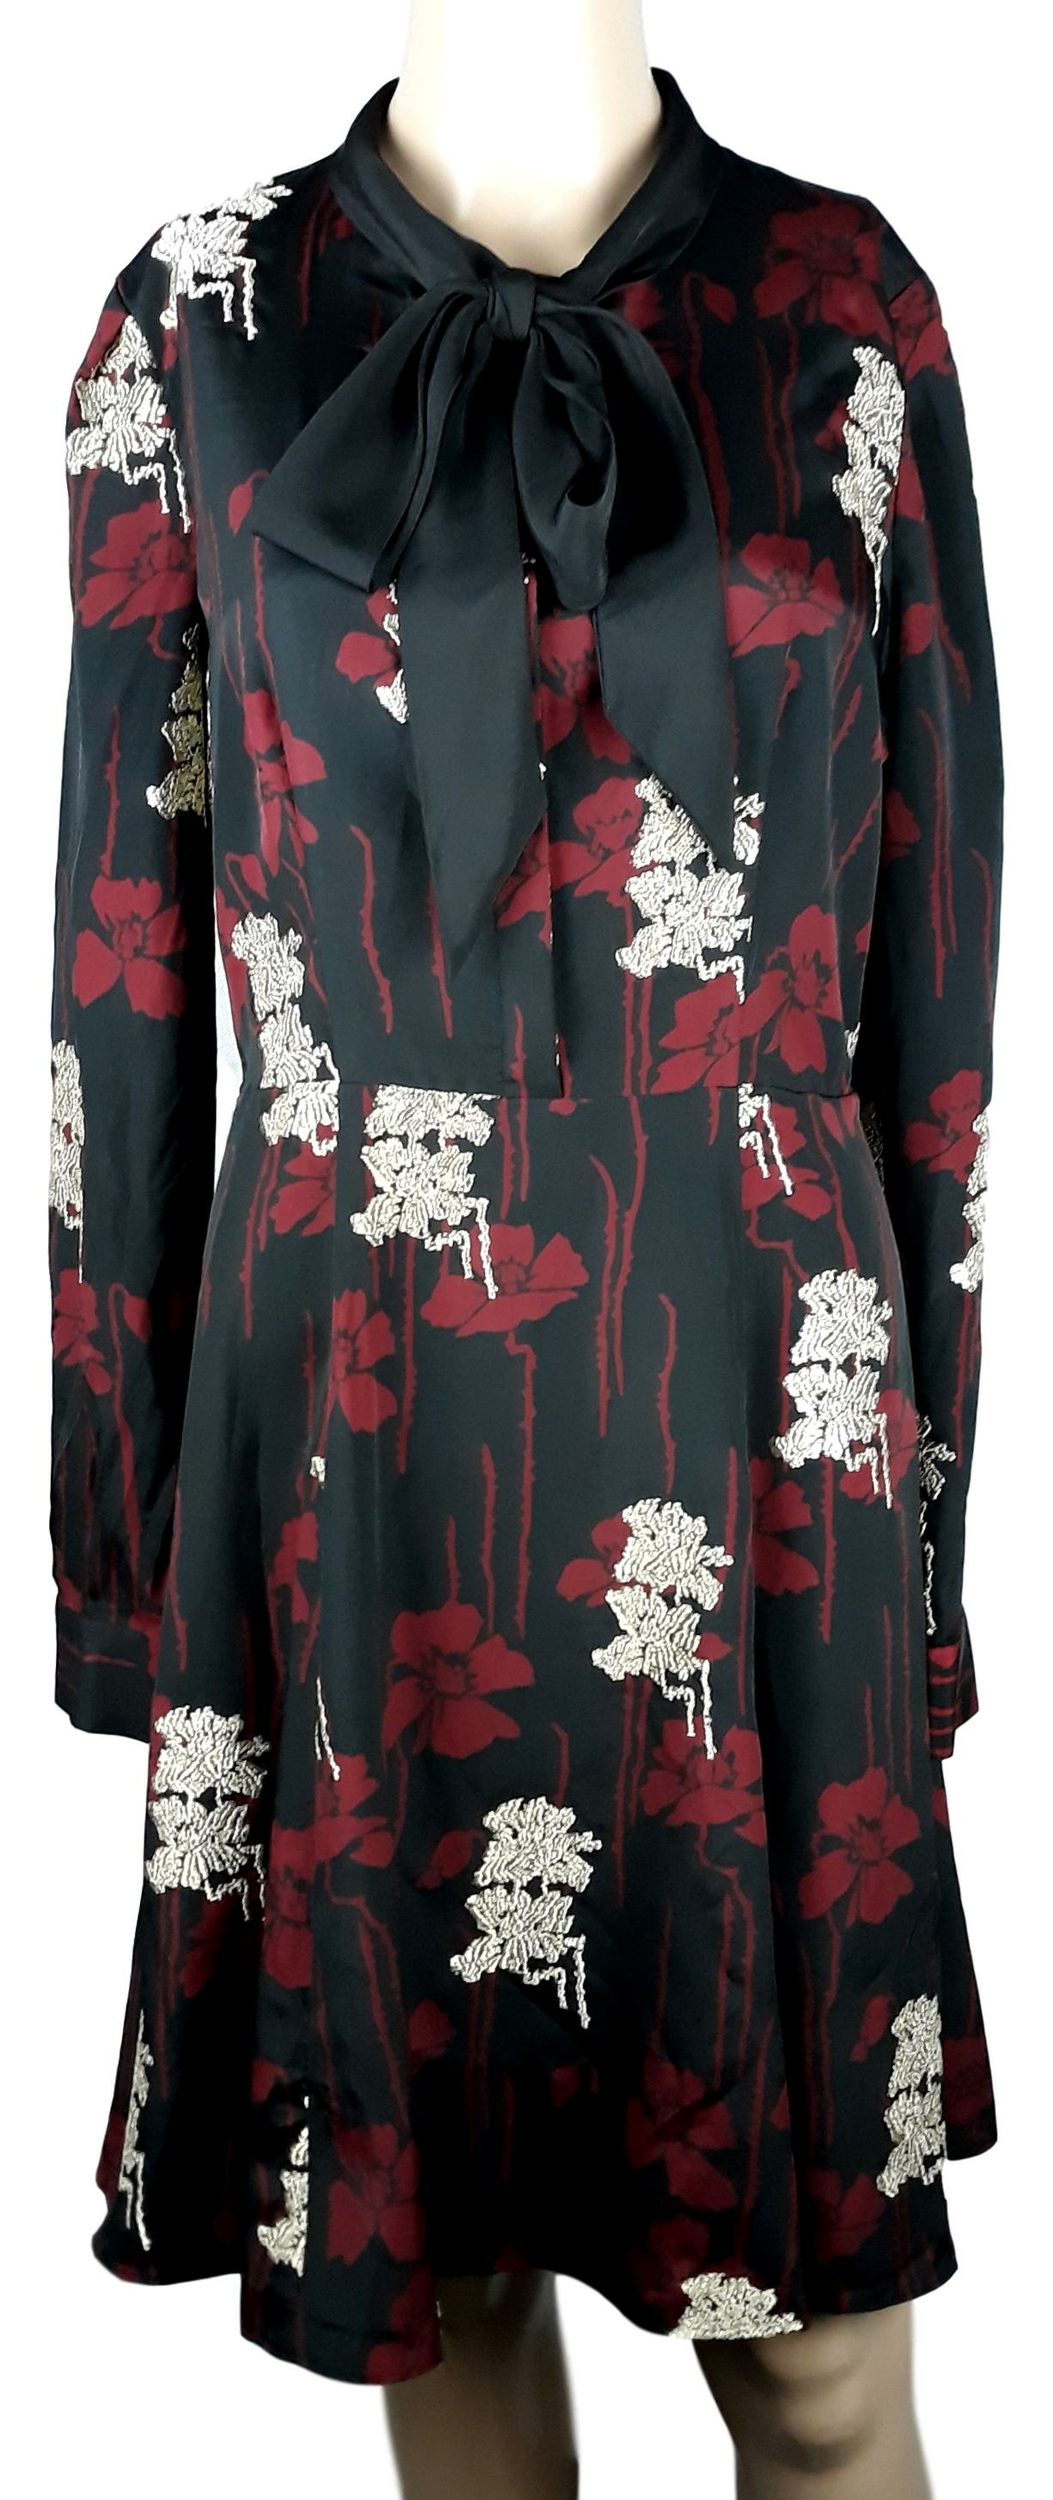 Robe The Kooples - Taille S